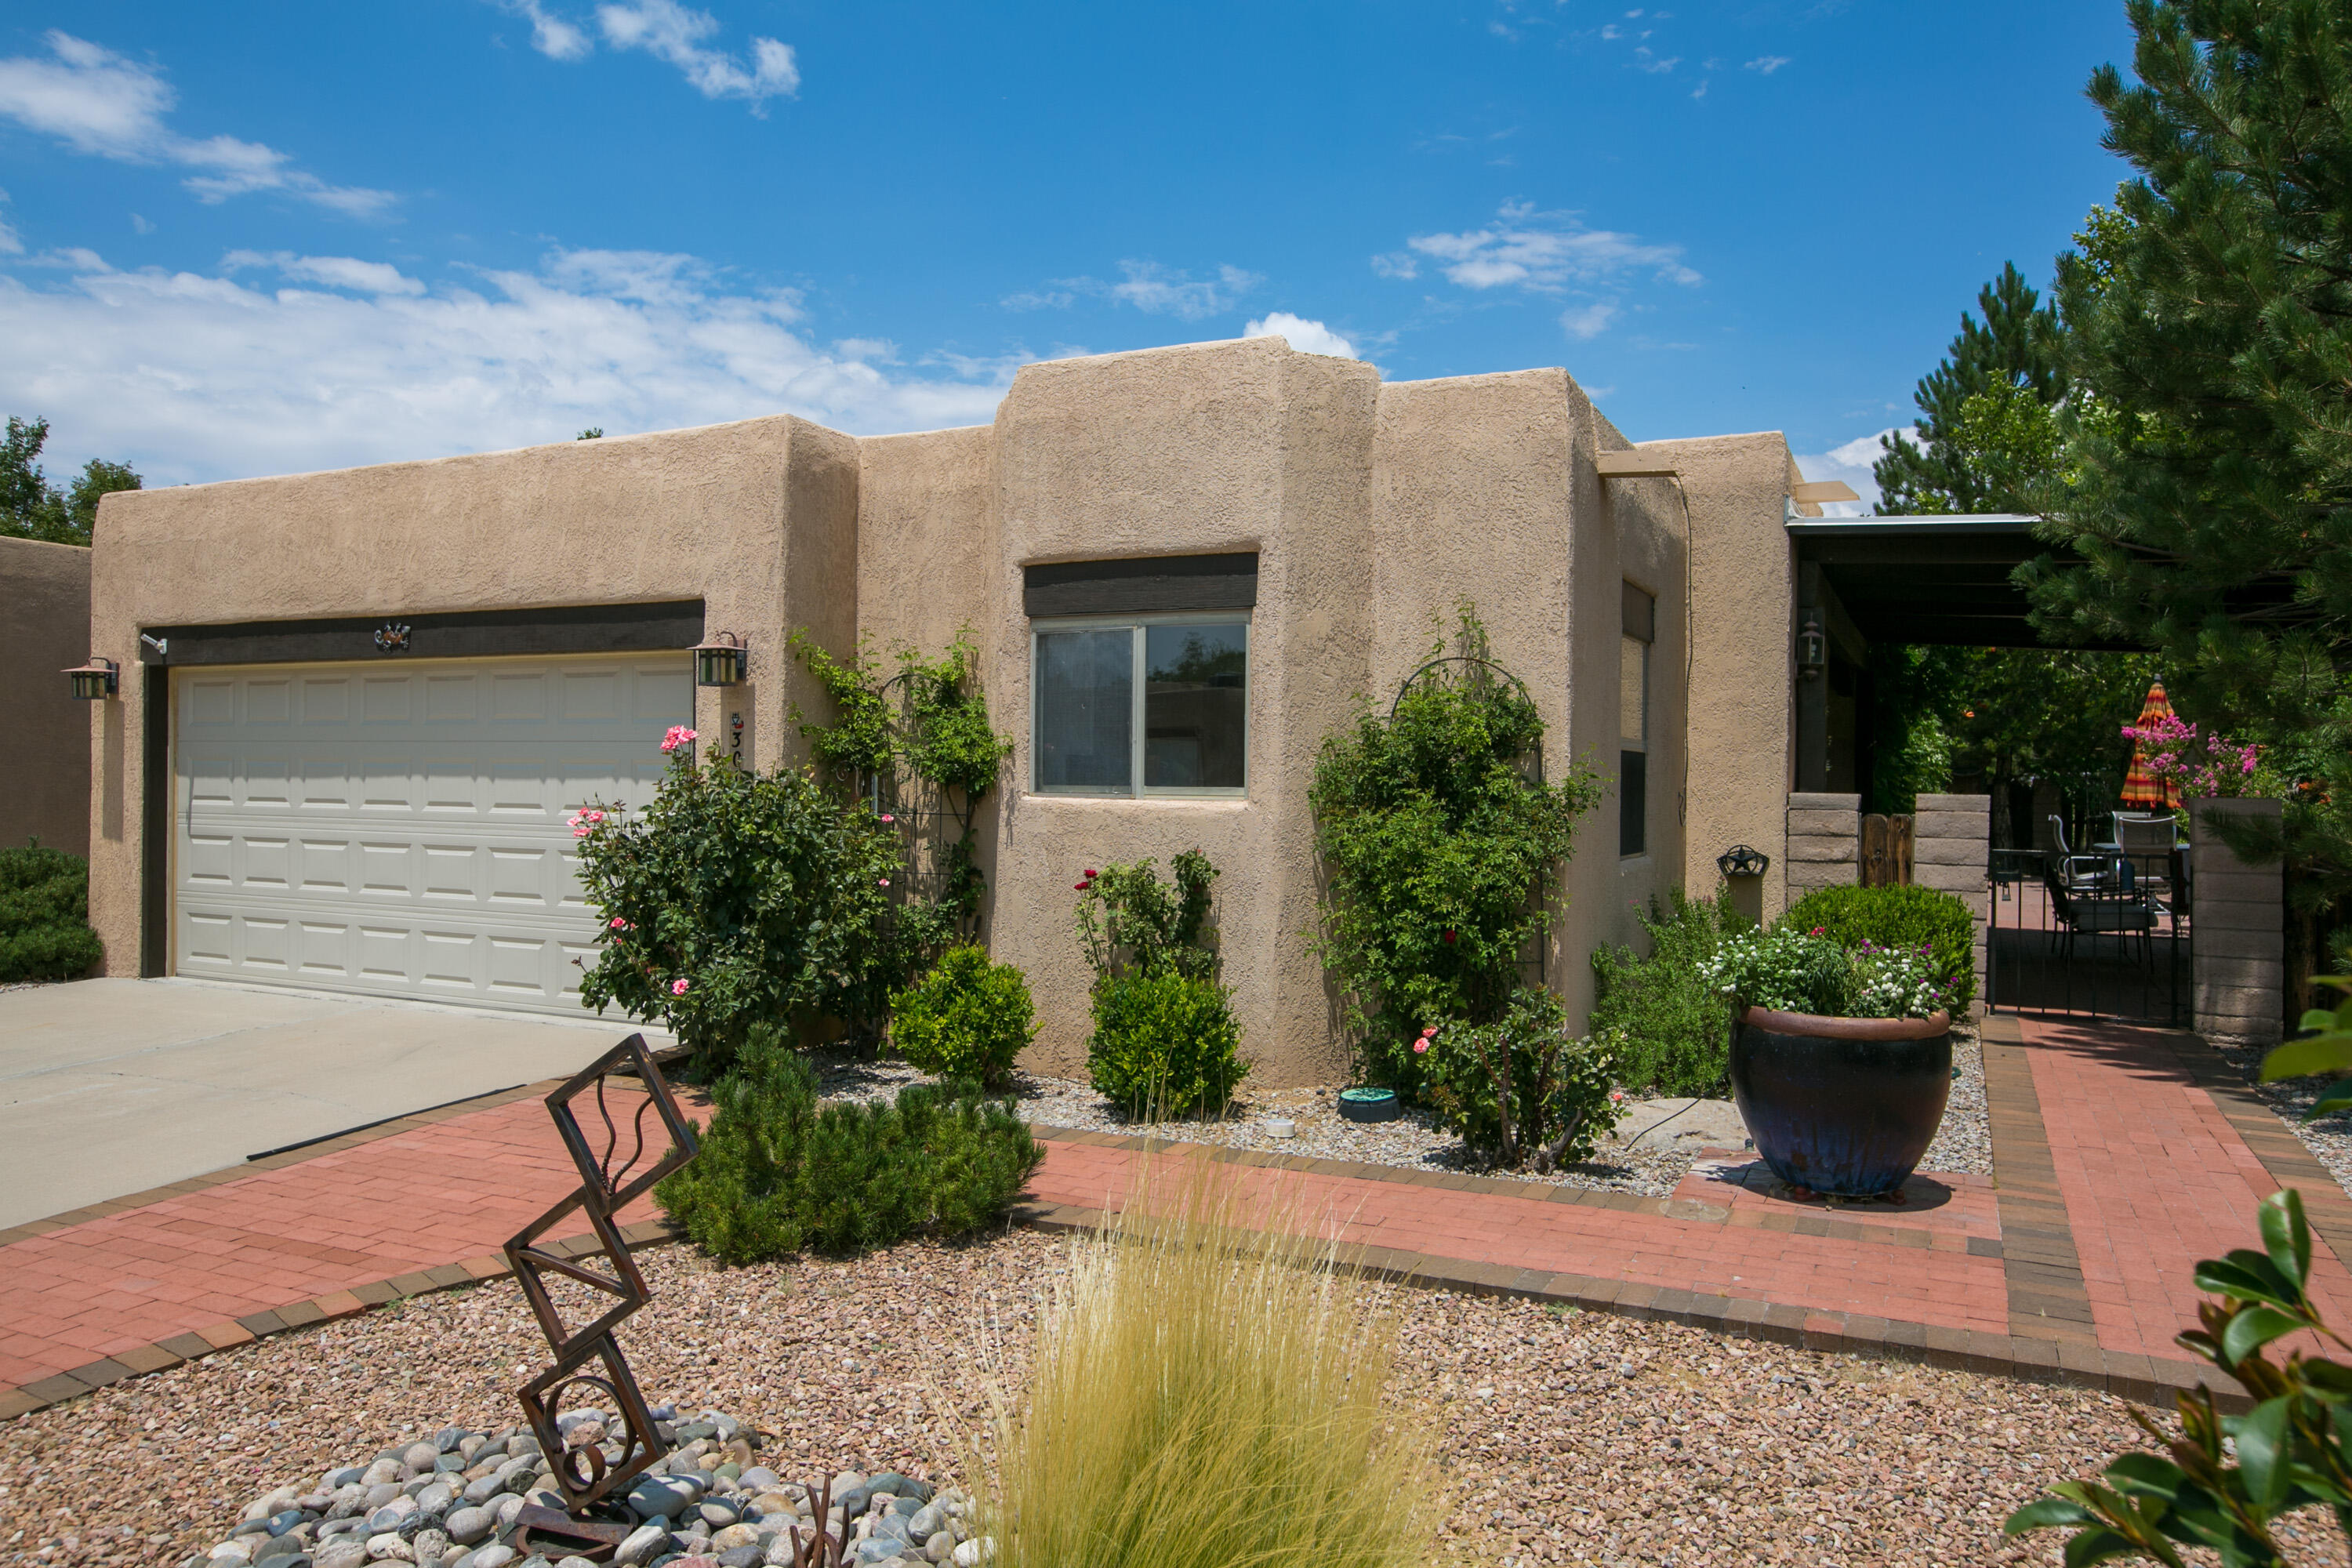 Best location in an already wonderful community, this charming one level home boasts views of the private walking space, and easy access to the acequia for recreation. Feel like you have a huge, lush yard with the ease of an easy care patio. The house has a flexible floorplan one of the three bedrooms currently configured as an office.  No closet but can easily be used as a bedroom. Lots of updates including kitchen cabinets and more. Two fireplaces, wood ceilings and more make this home a true north valley gem.